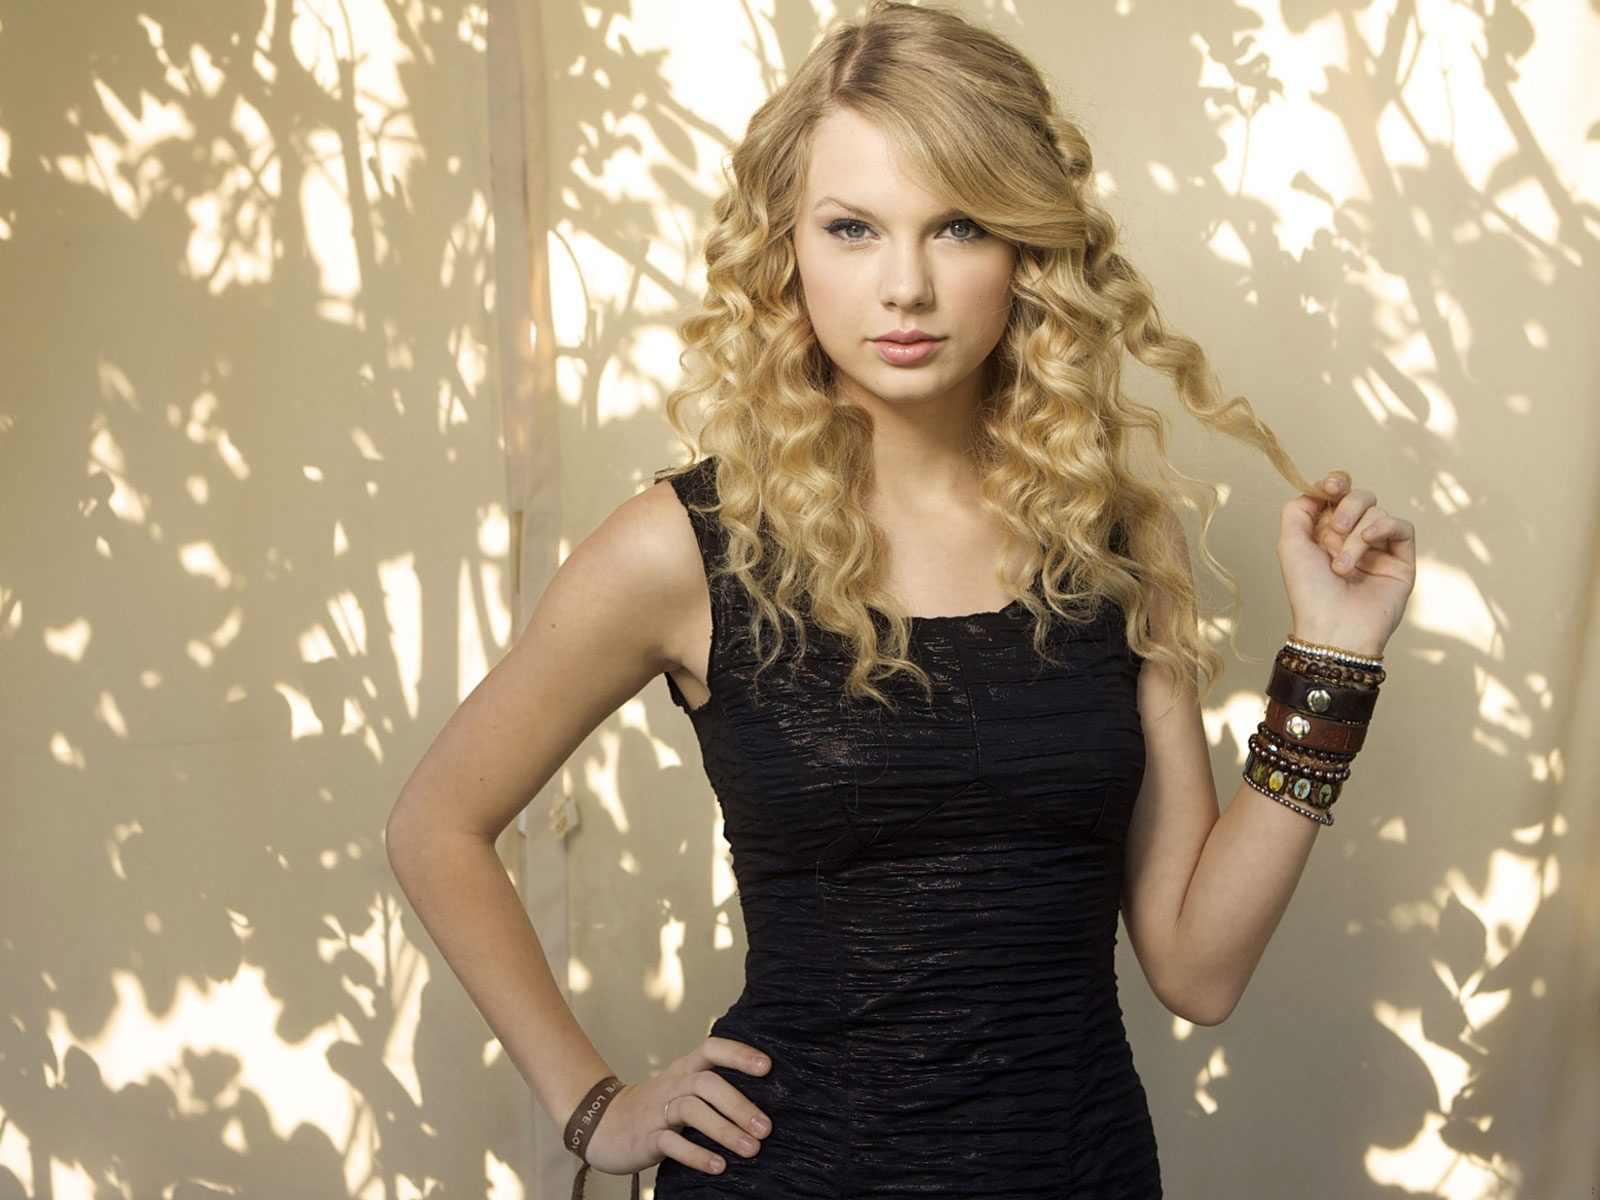 Taylor swift wallpapers in jpg format for free download taylor swift wallpapers voltagebd Images